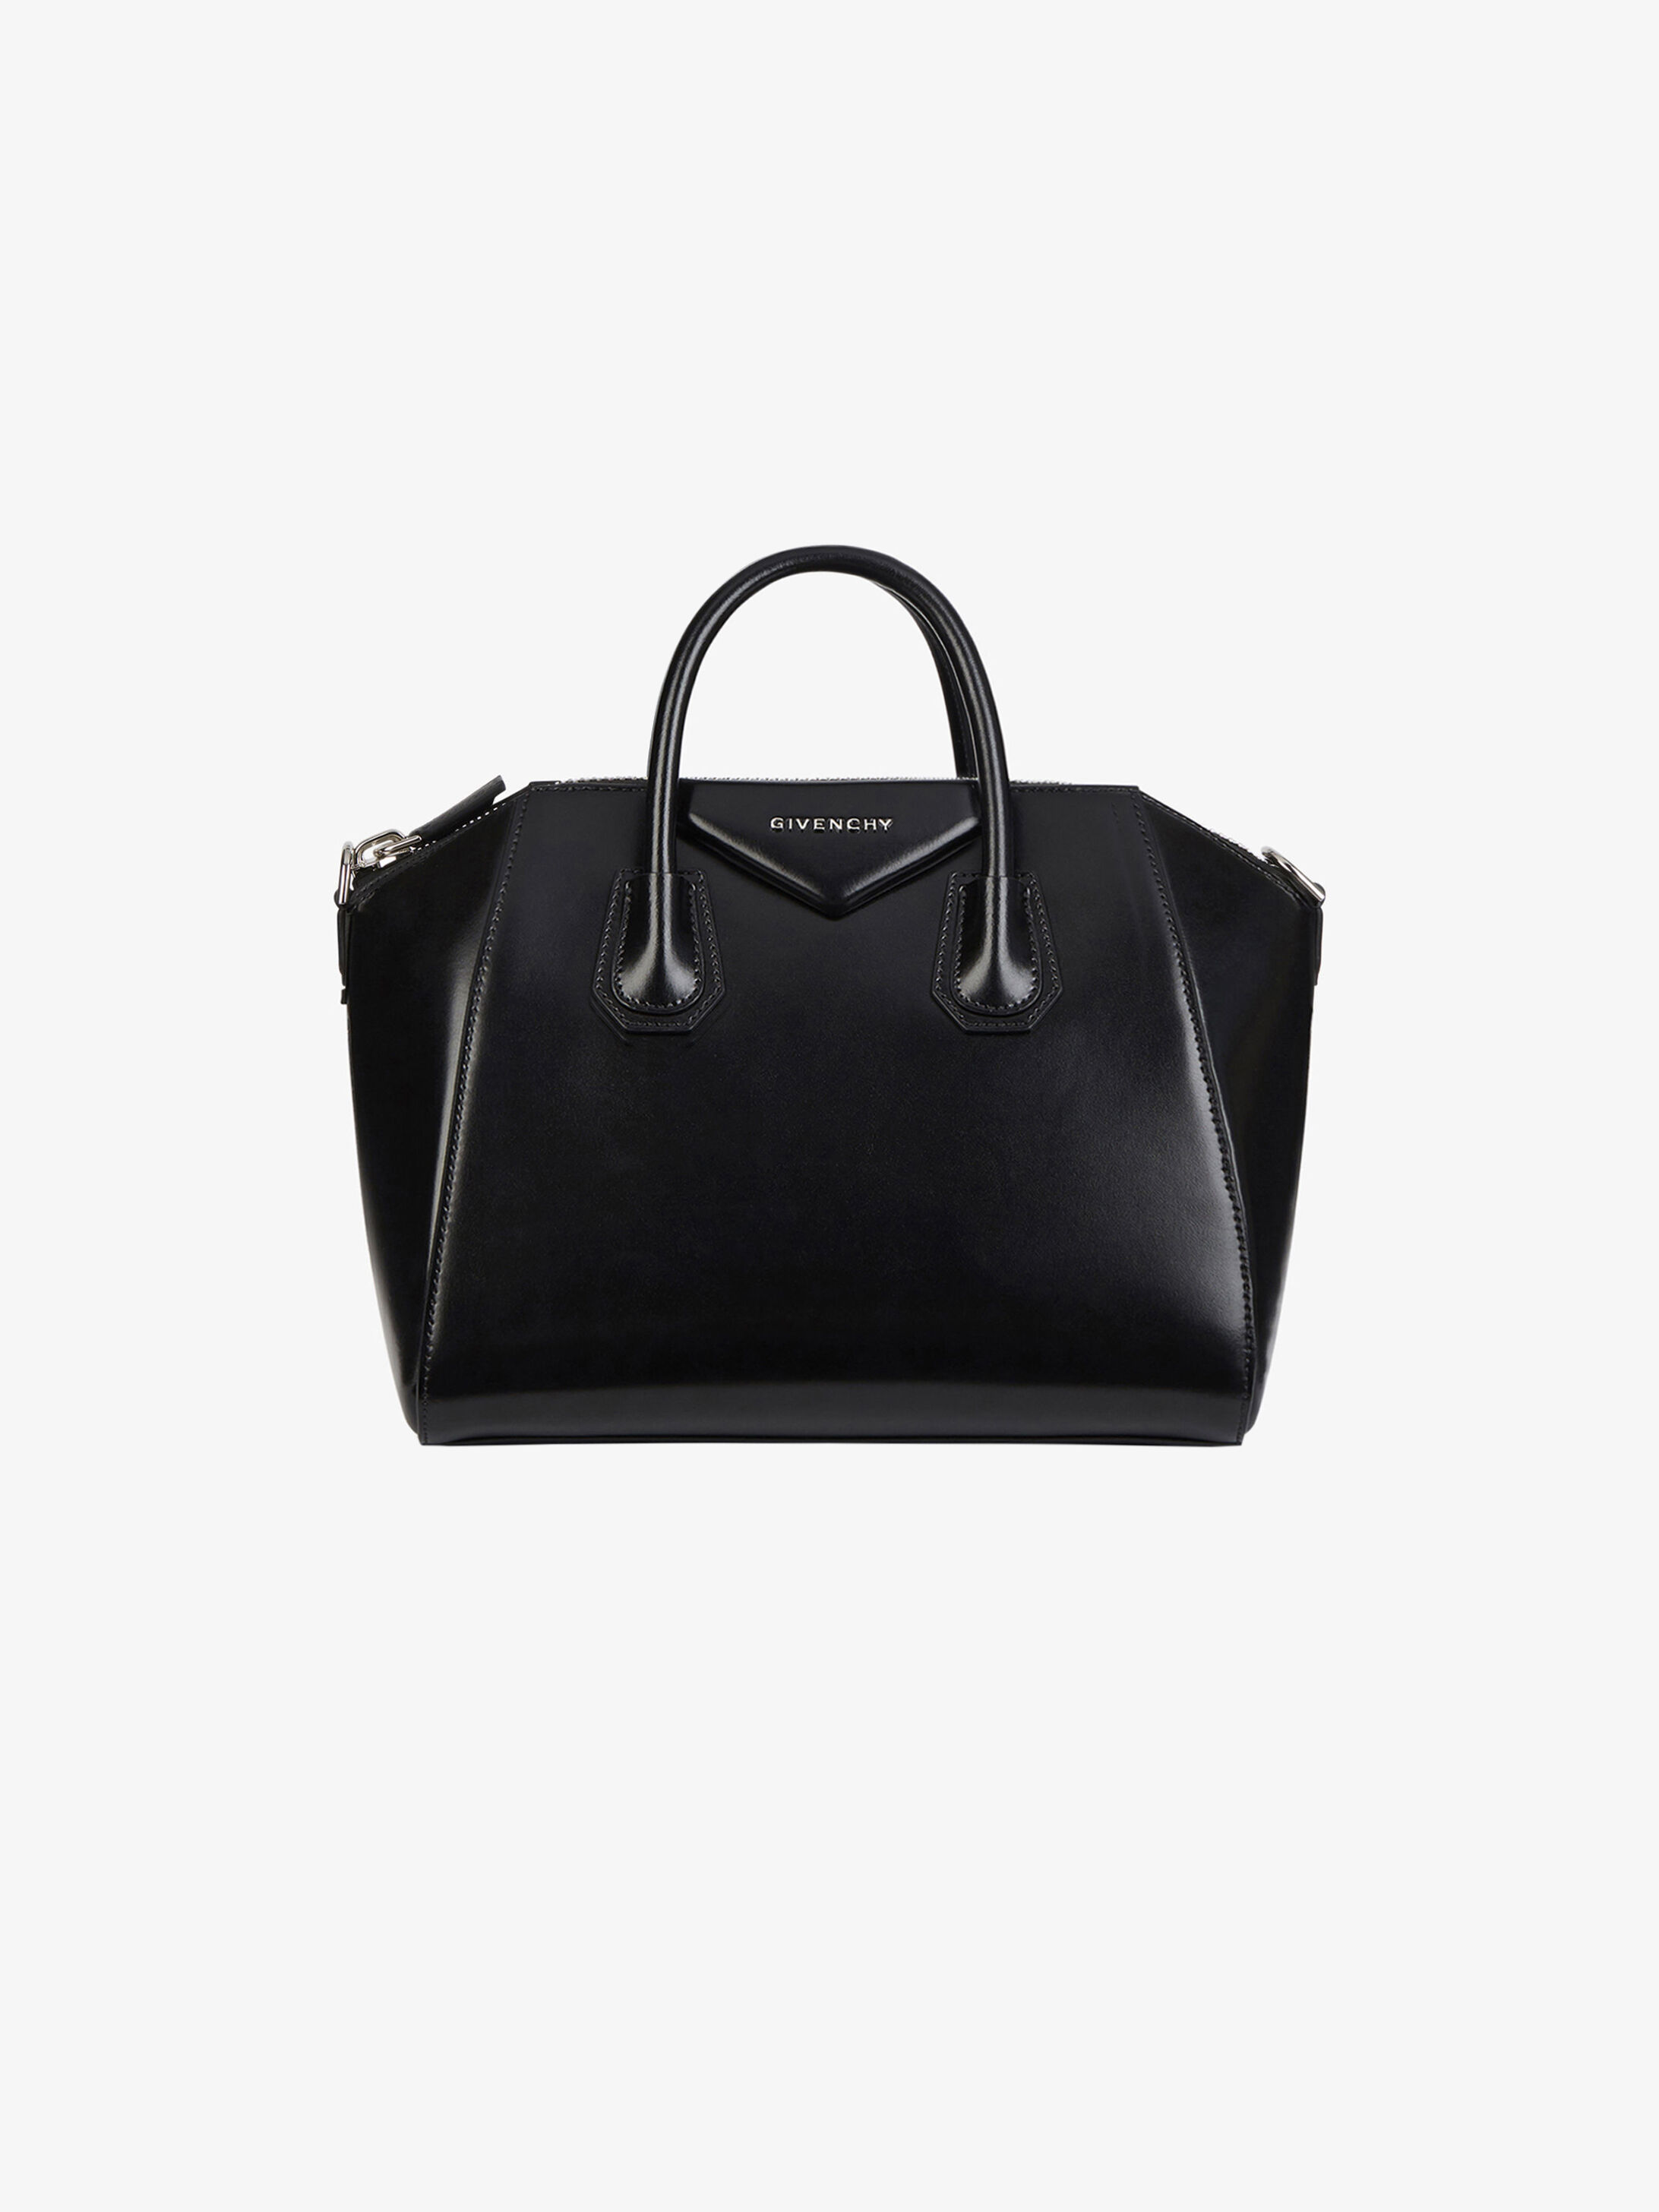 d74887128b Givenchy Medium Antigona bag | GIVENCHY Paris